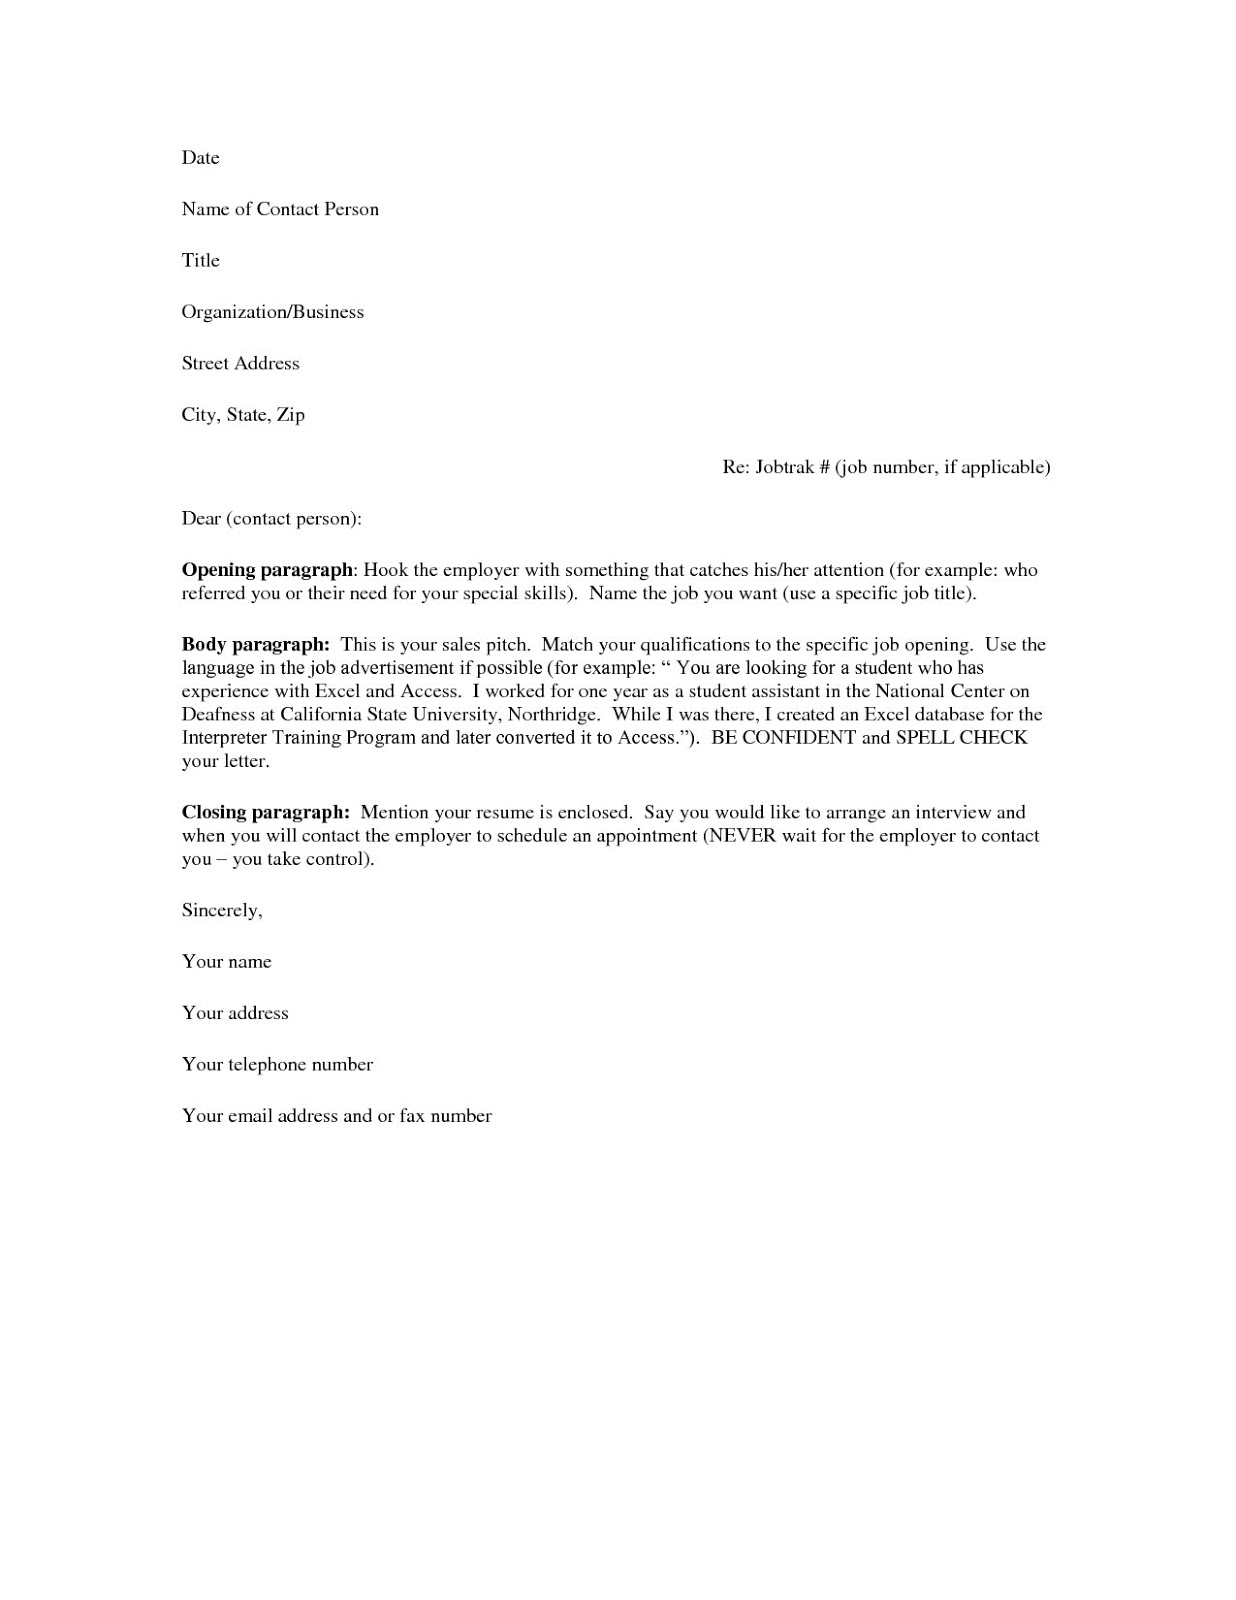 Cover letter for a resume aploon